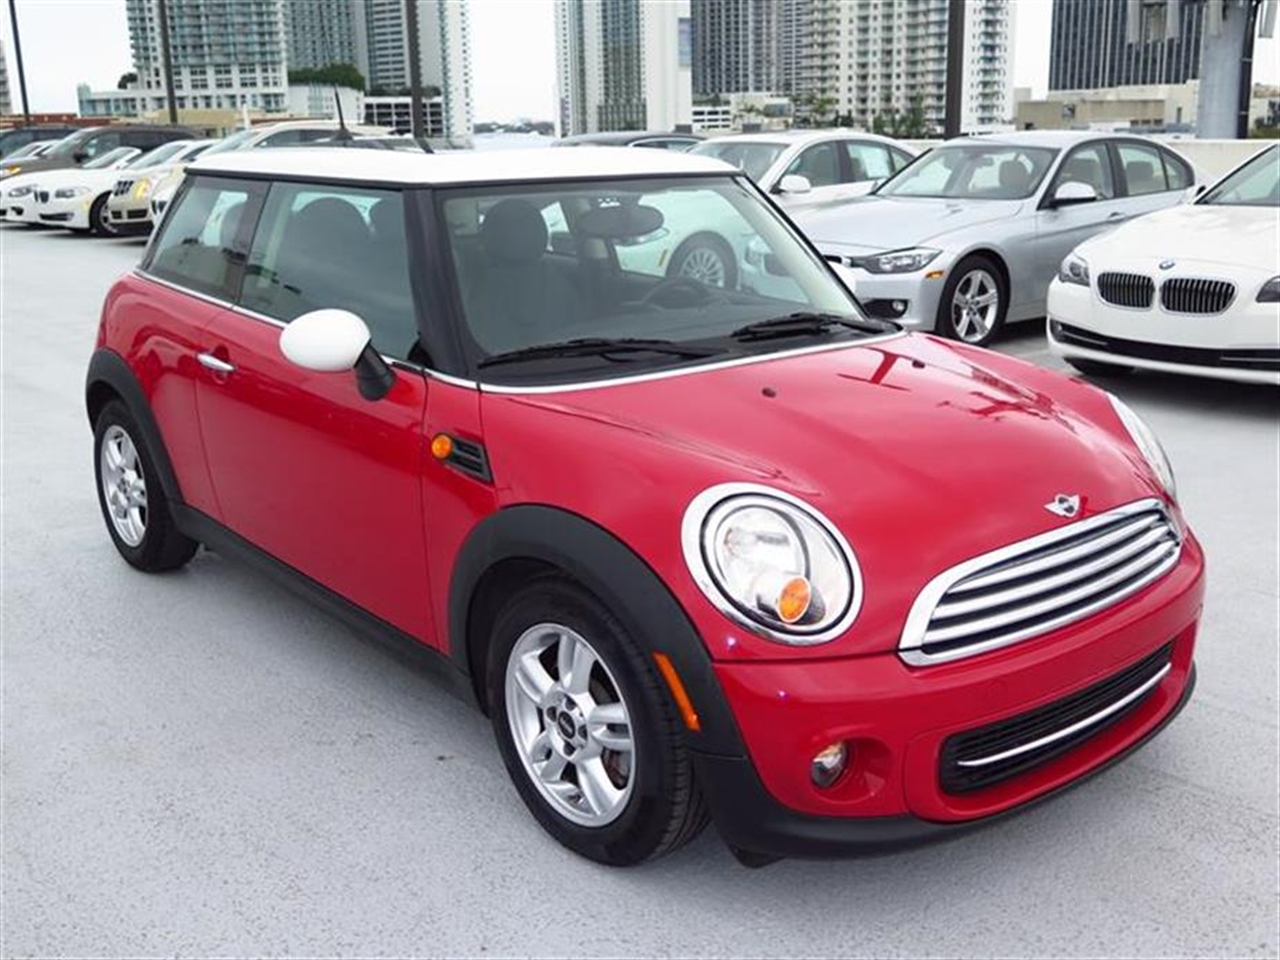 2012 MINI COOPER 2dr Cpe 11553 miles 1 rear cup holder 12V auxiliary pwr outlet in cockpit  l